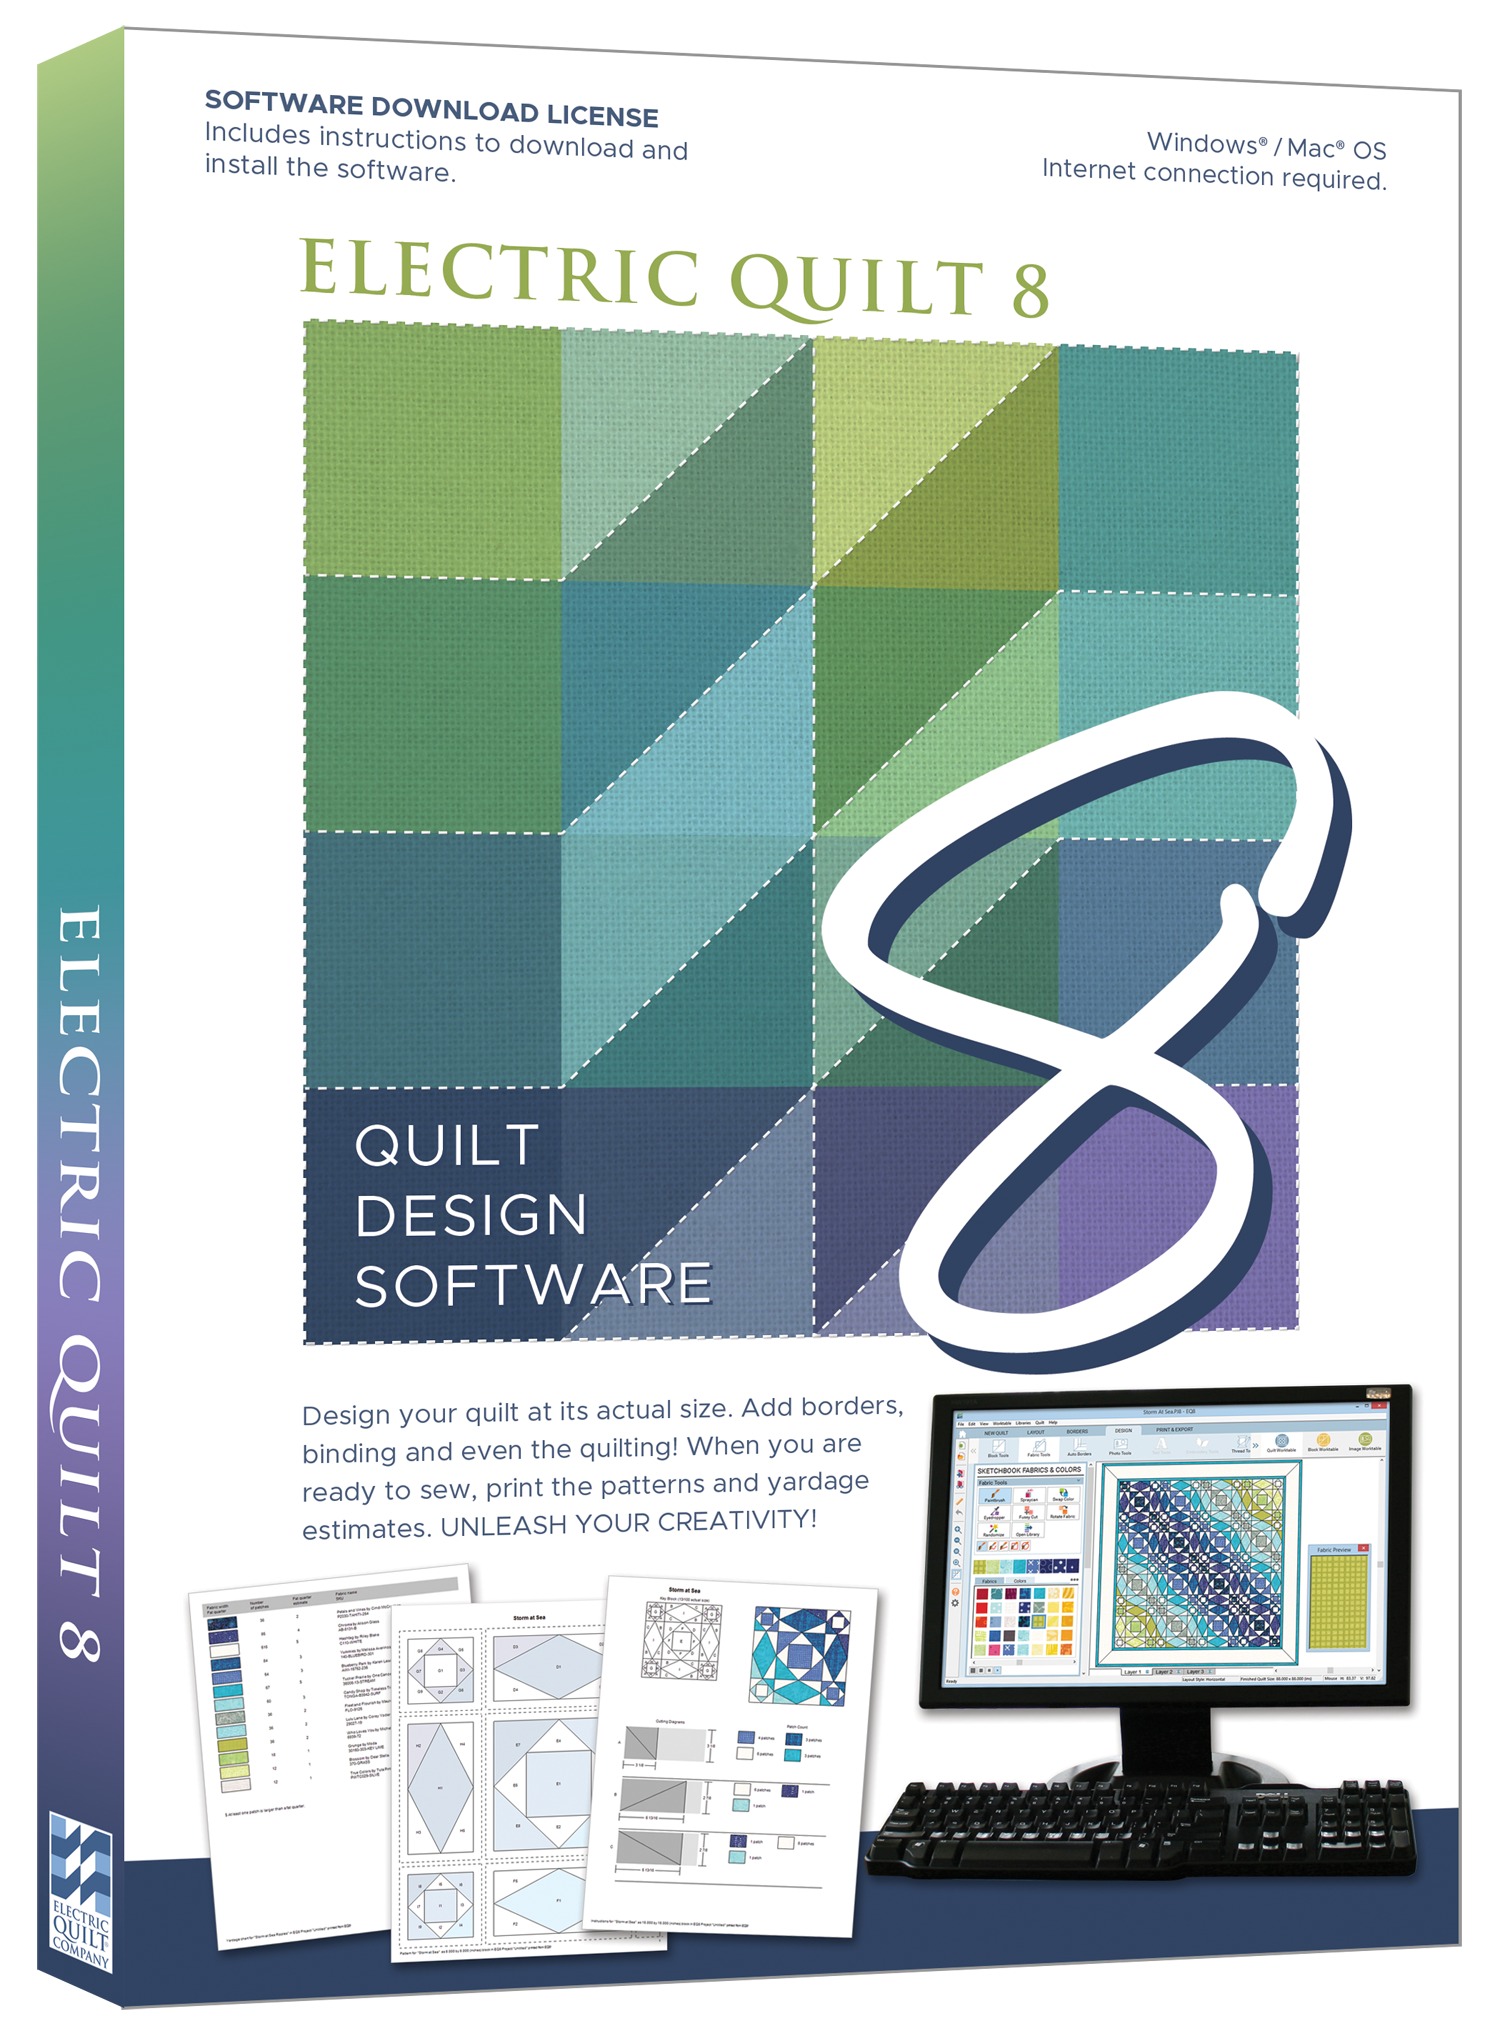 Rio Designs Patchwork Amp Quilting Software